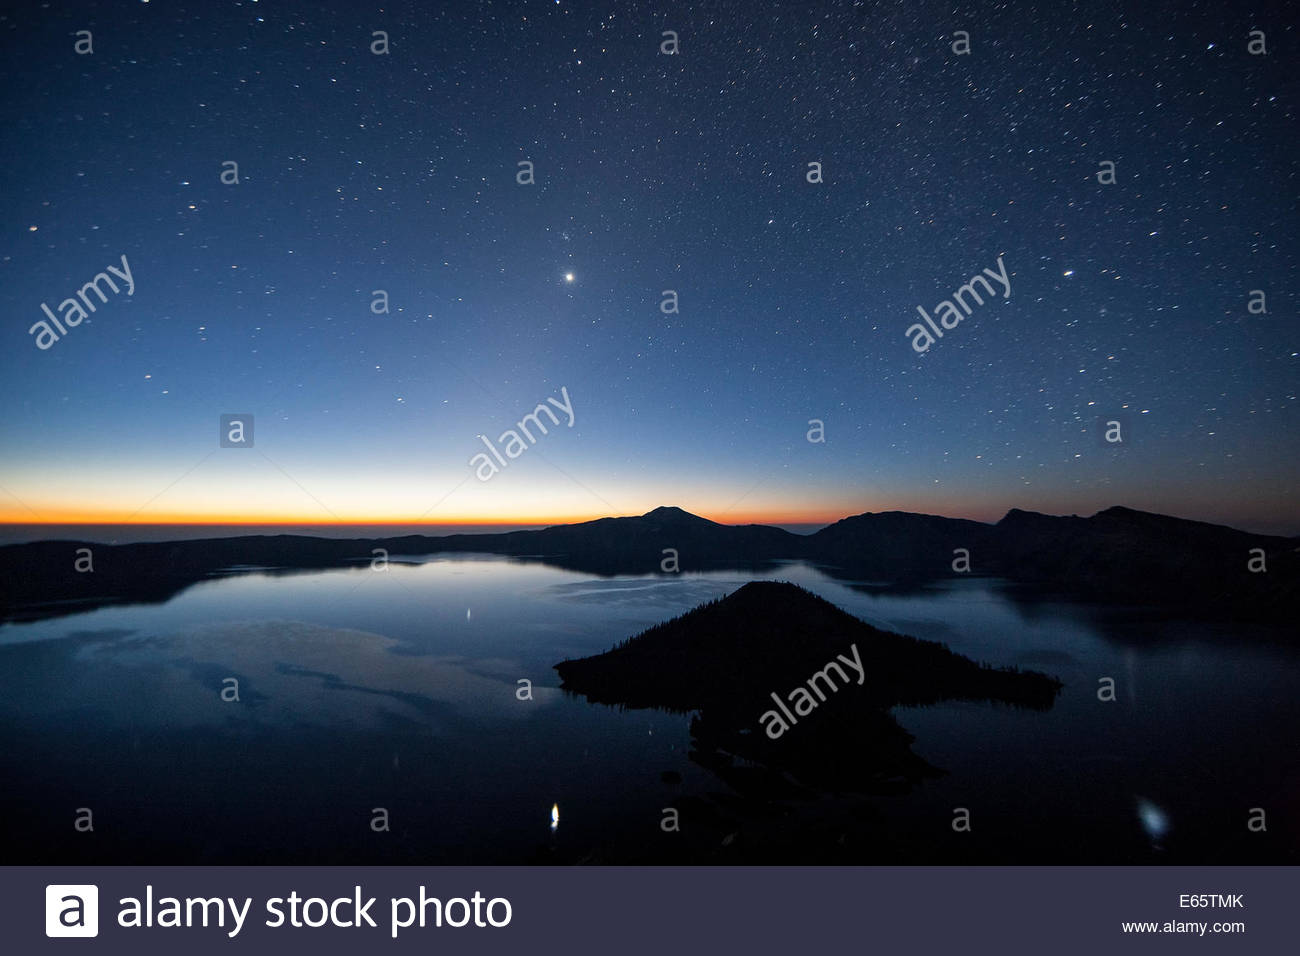 Thousands of stars and the planet Venus shine over Crater Lake in Oregon just before sunrise. - Stock Image